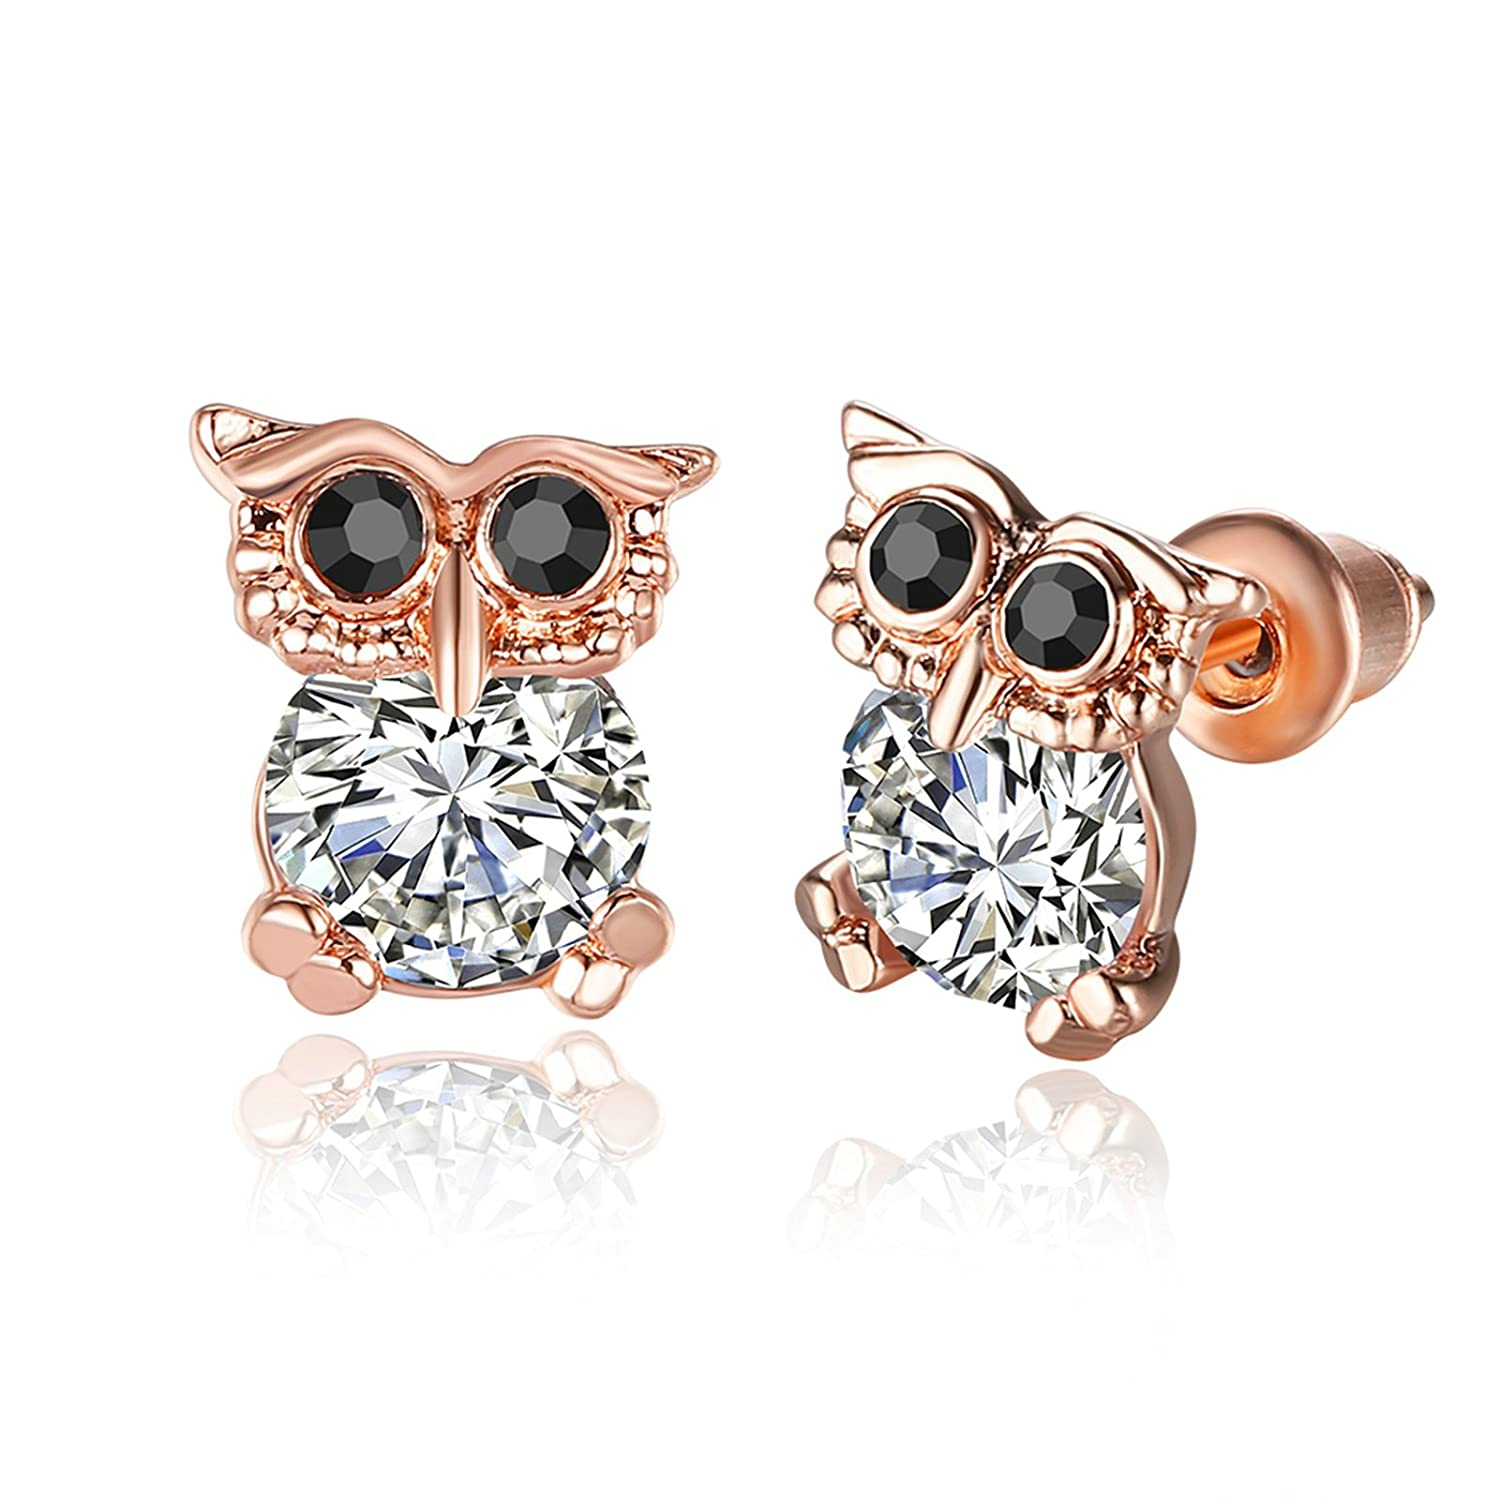 AmDxD Jewelry Rose Gold Plated Stud Earrings for Women Rose Gold Night Owl 8X9MM